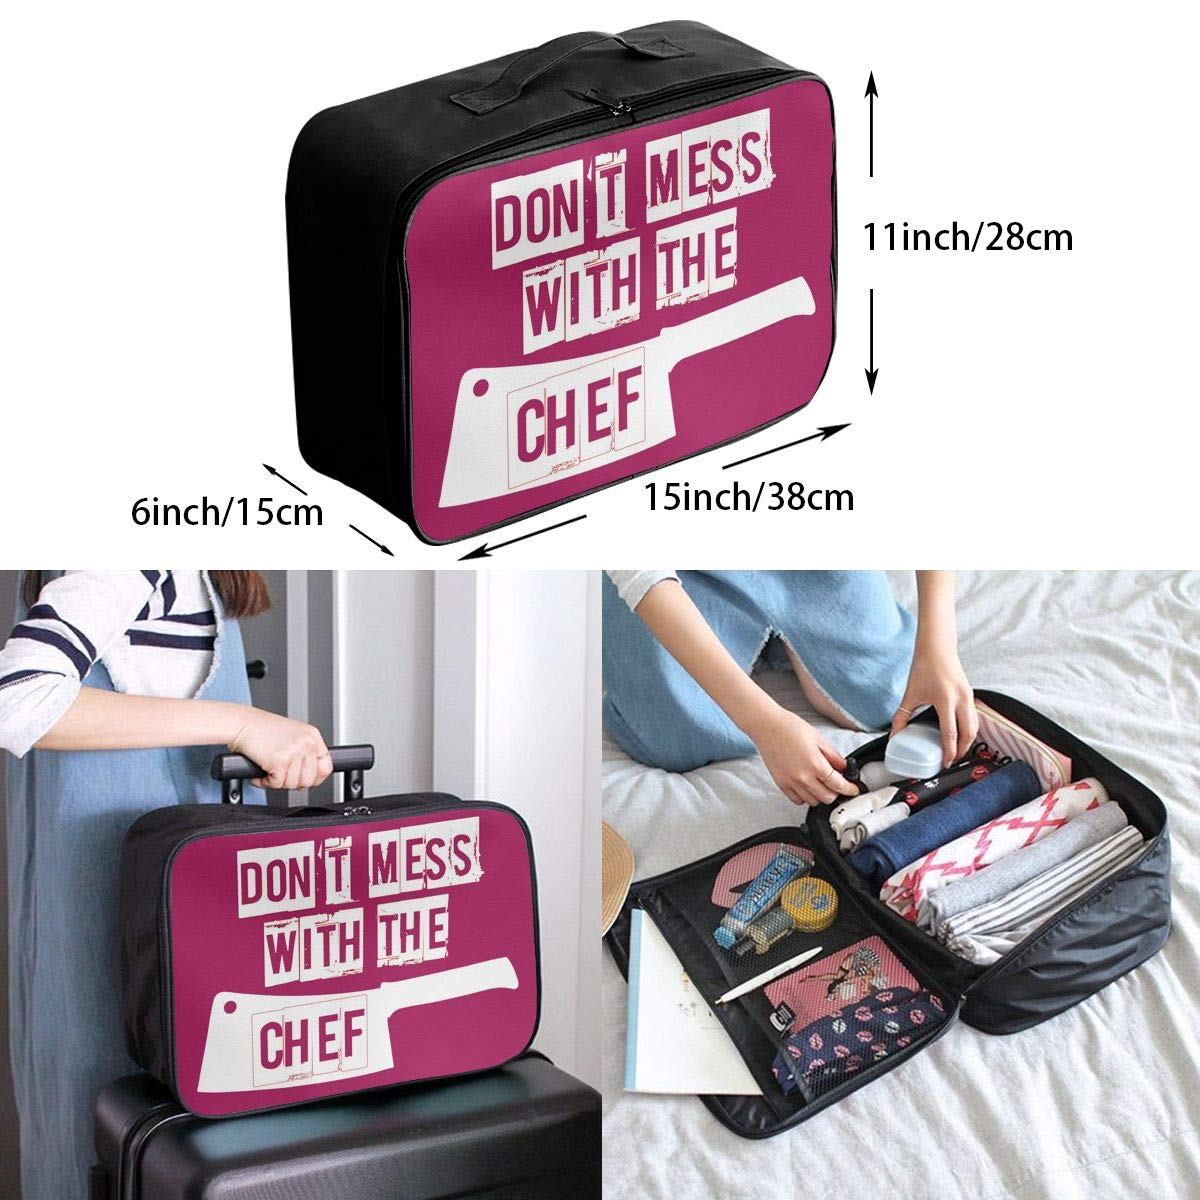 Travel Luggage Duffle Bag Lightweight Portable Handbag Dont Mess Large Capacity Waterproof Foldable Storage Tote